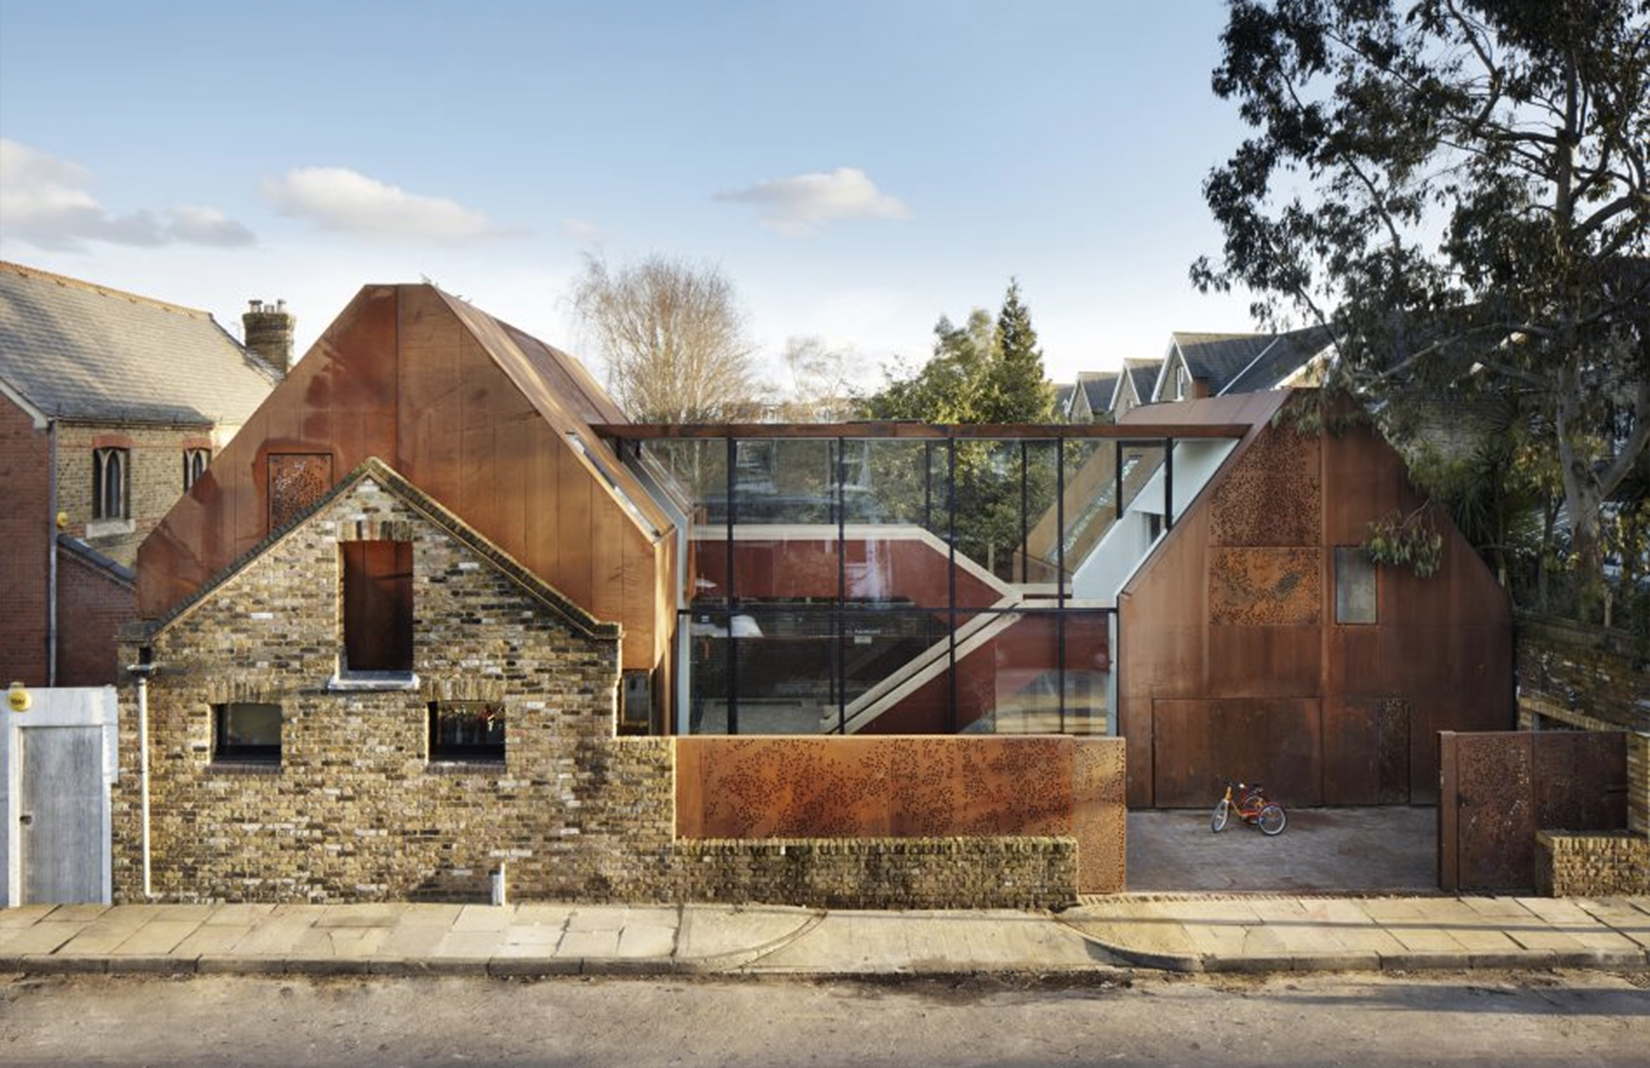 RIBA awardwinner Kew House hits the market in London